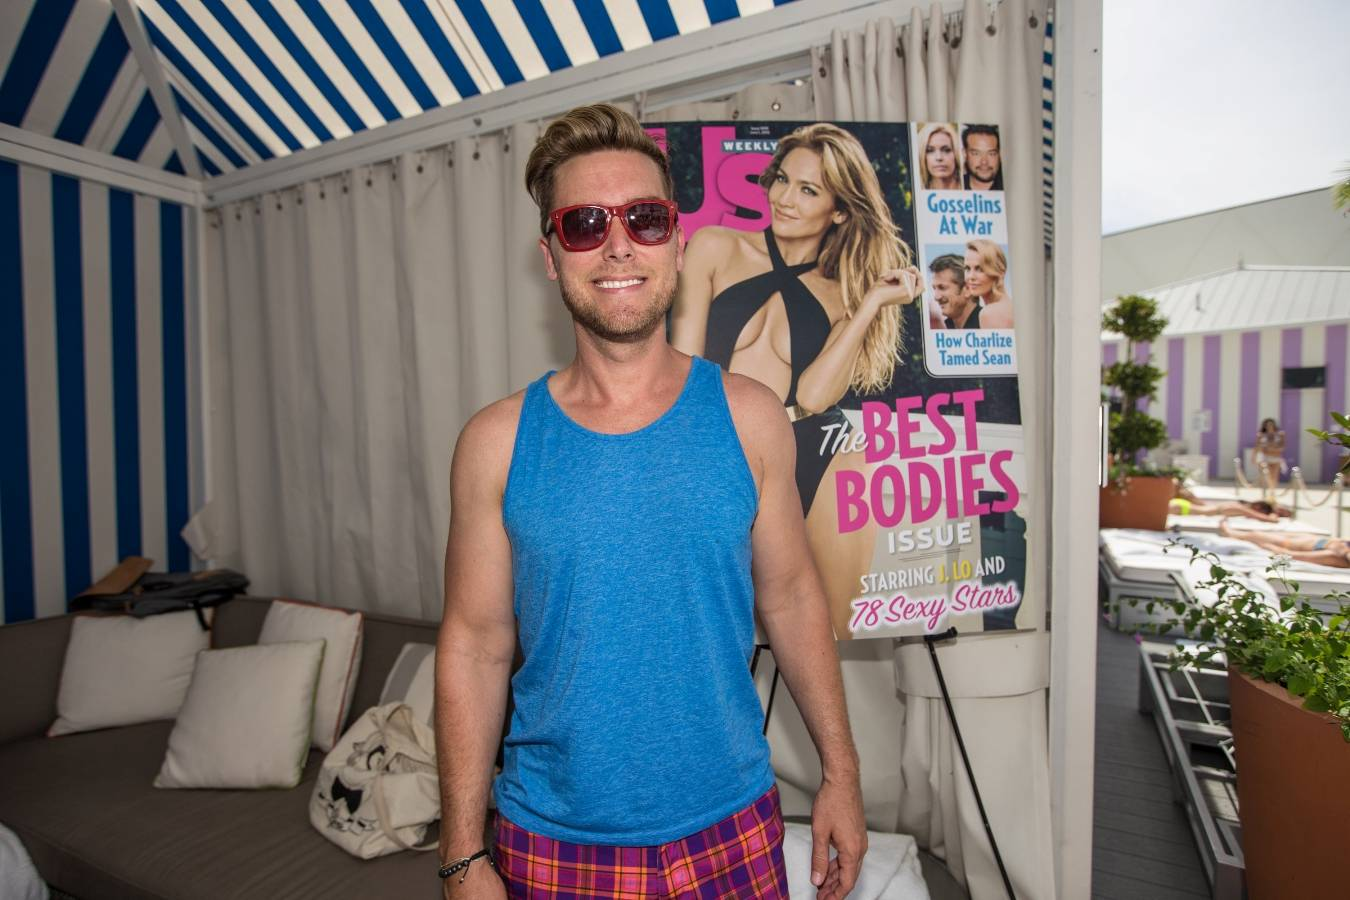 Former NSYNC member Lance Bass hosts the epic Us Weekly pool party at Foxtail Pool Club May 30_Andrew Dang